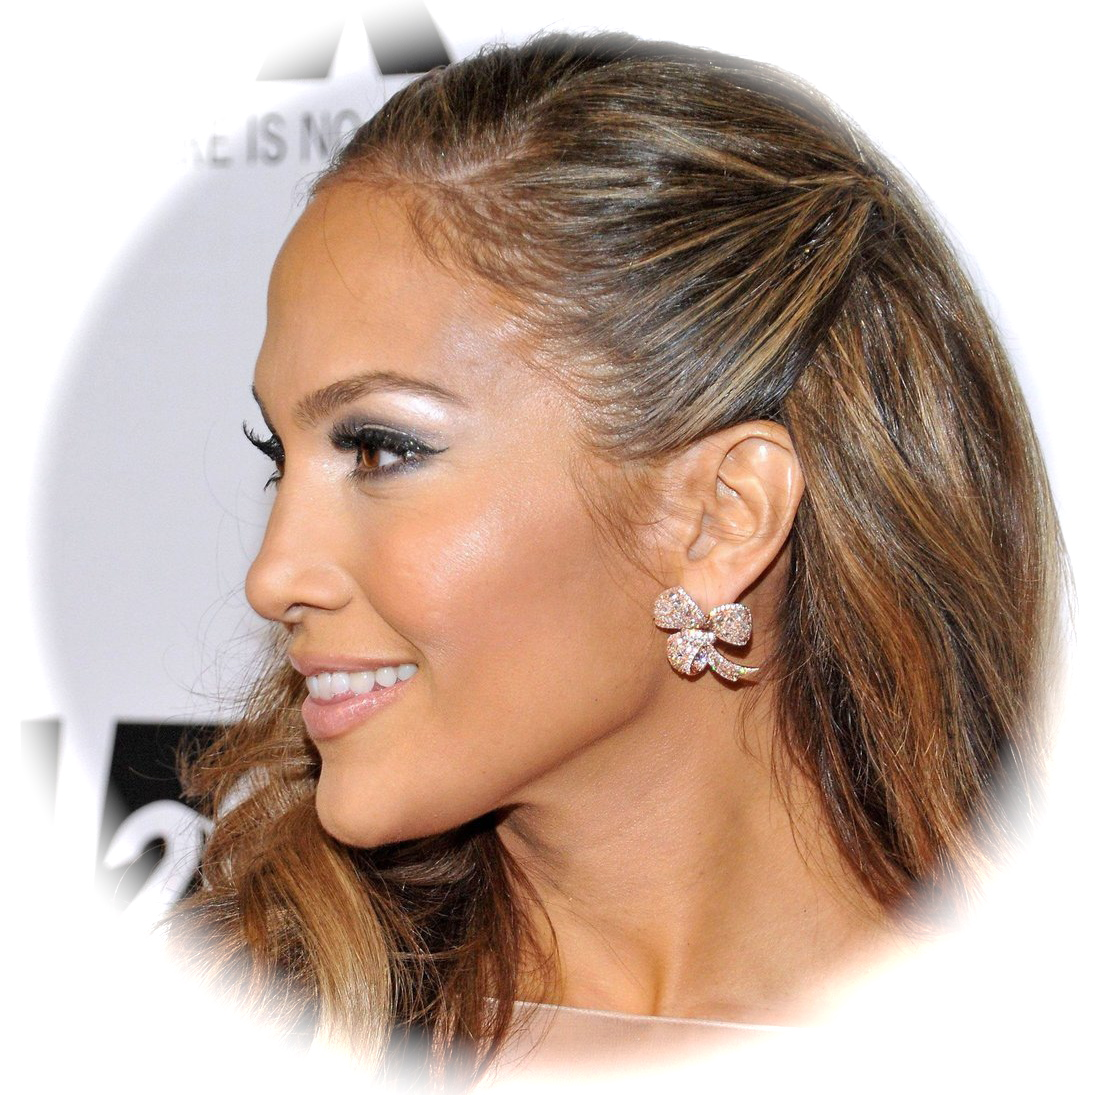 LAUREN DAY MAKEUP Jennifer Lopez Glamour Idol